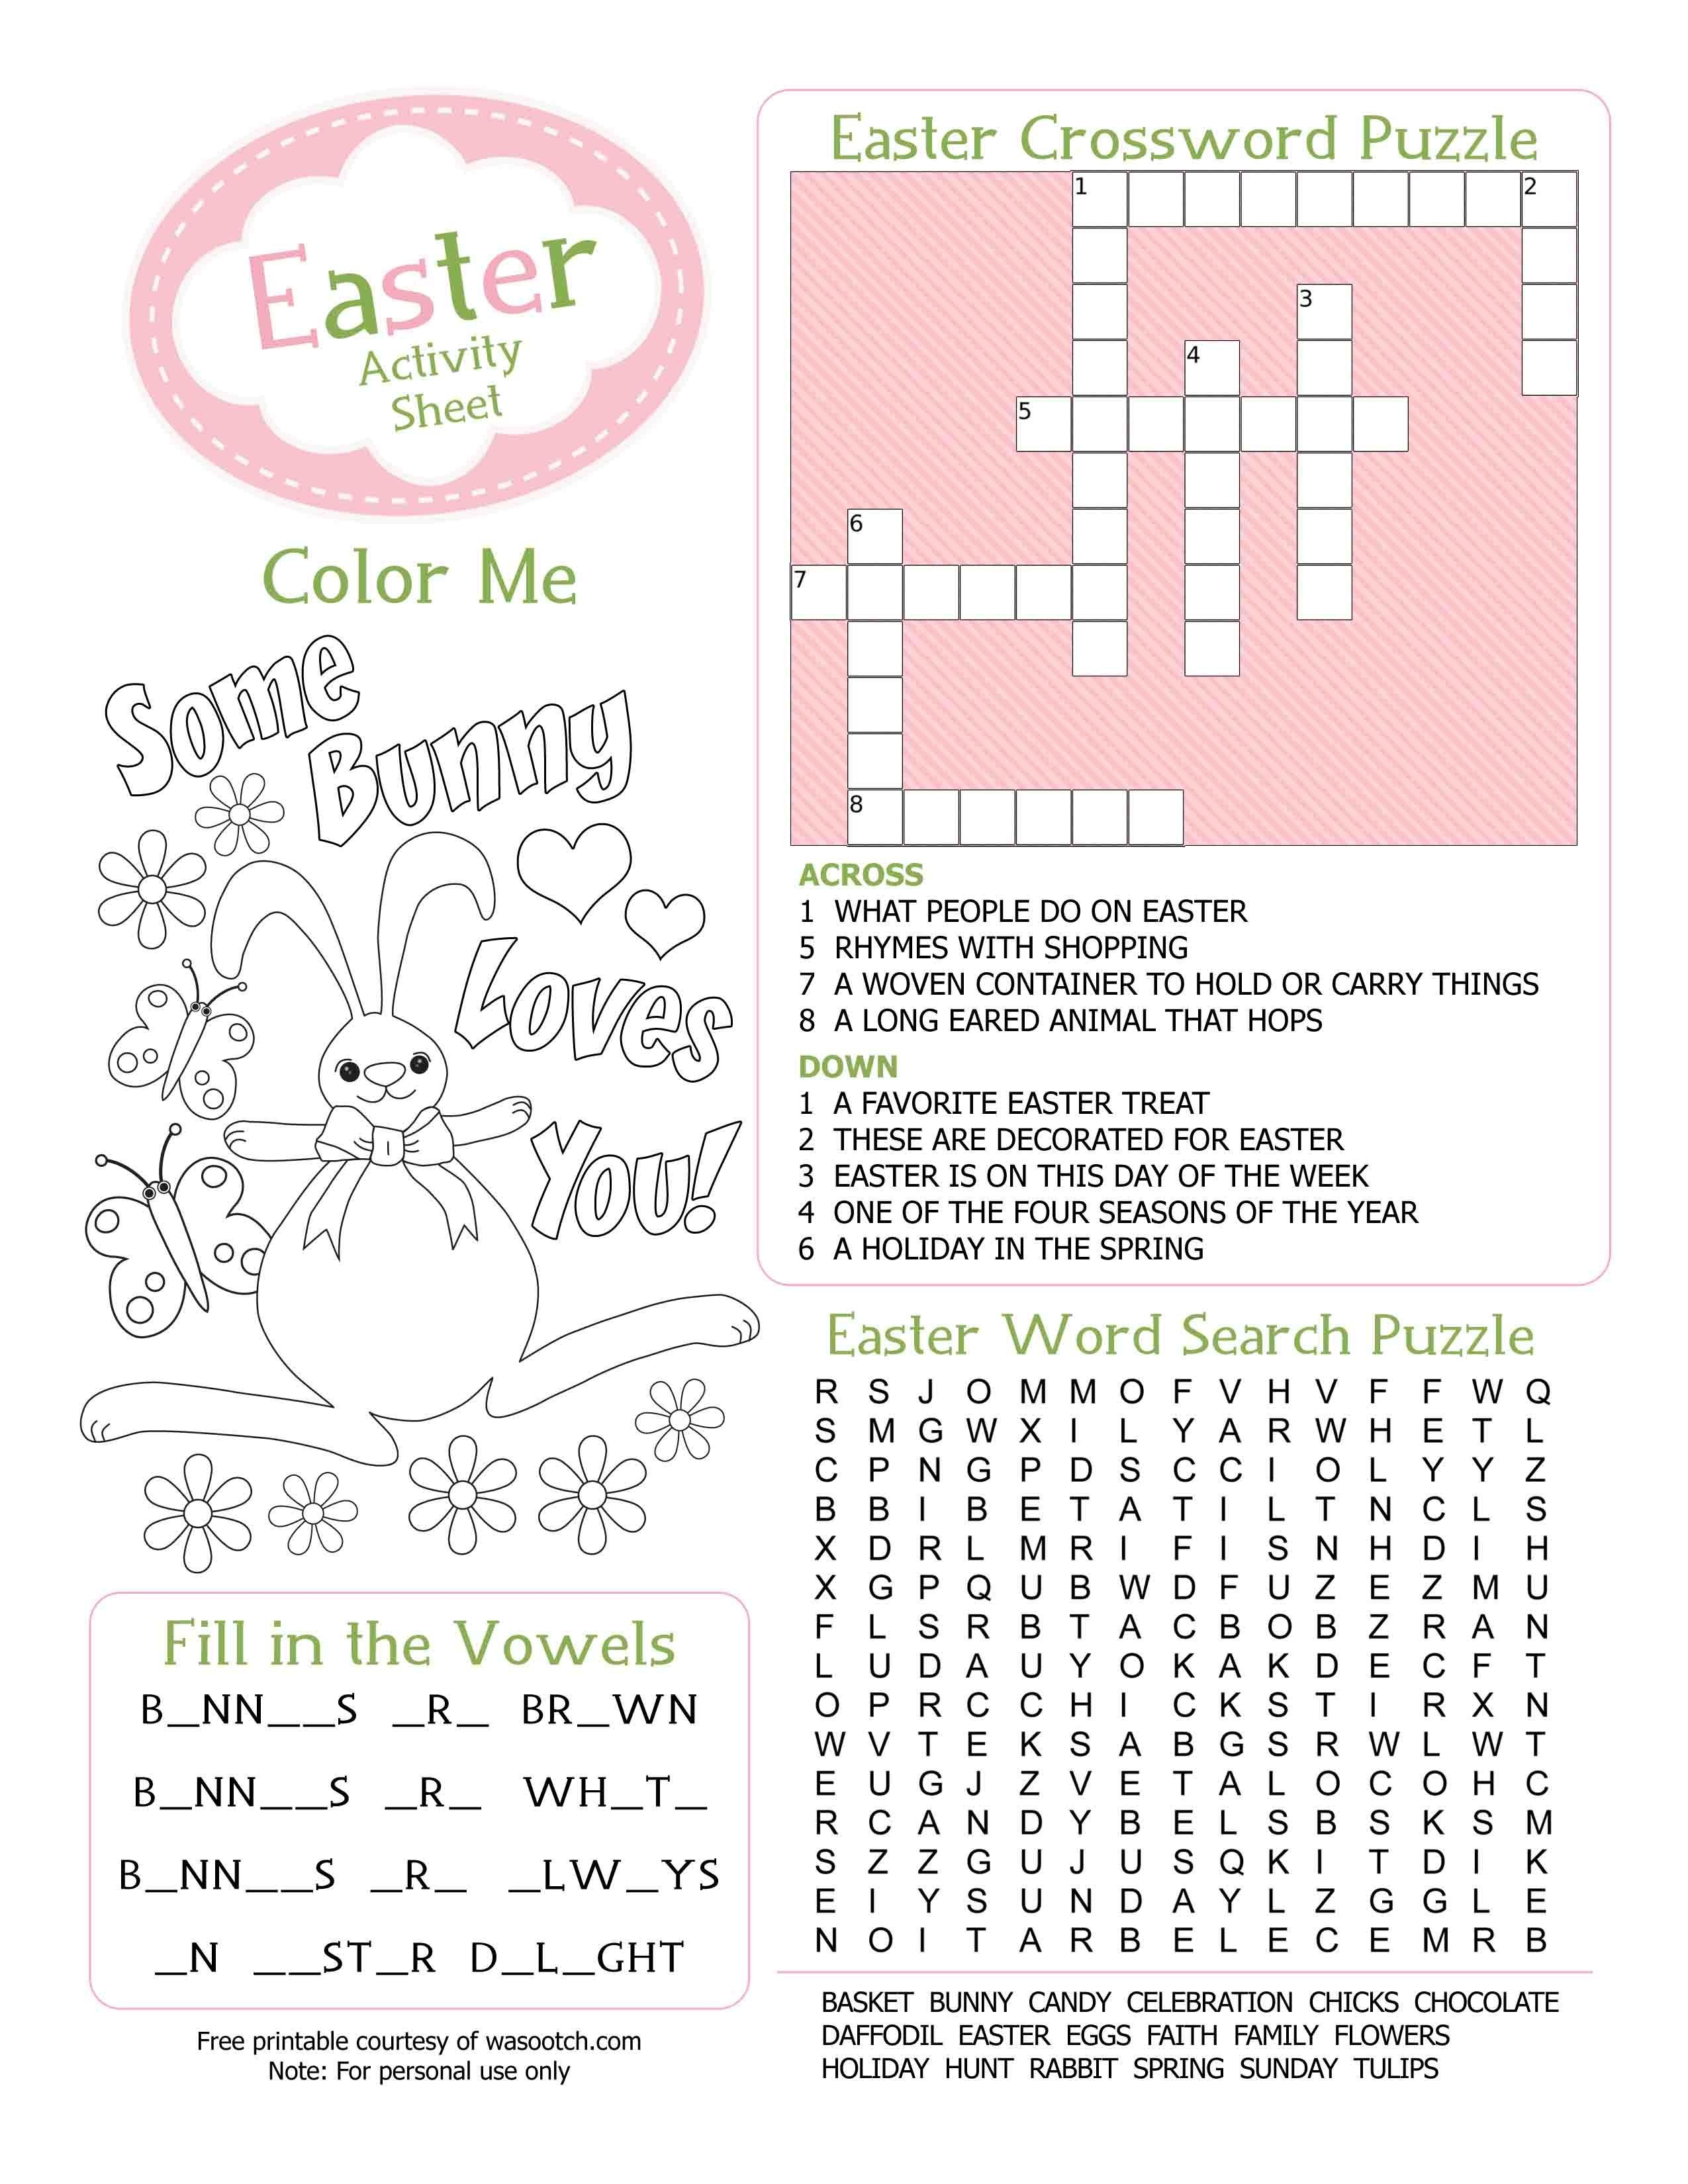 Easter Kid's Activity Sheet Free Printables Available @party - Free Printable Activity Sheets For Kids